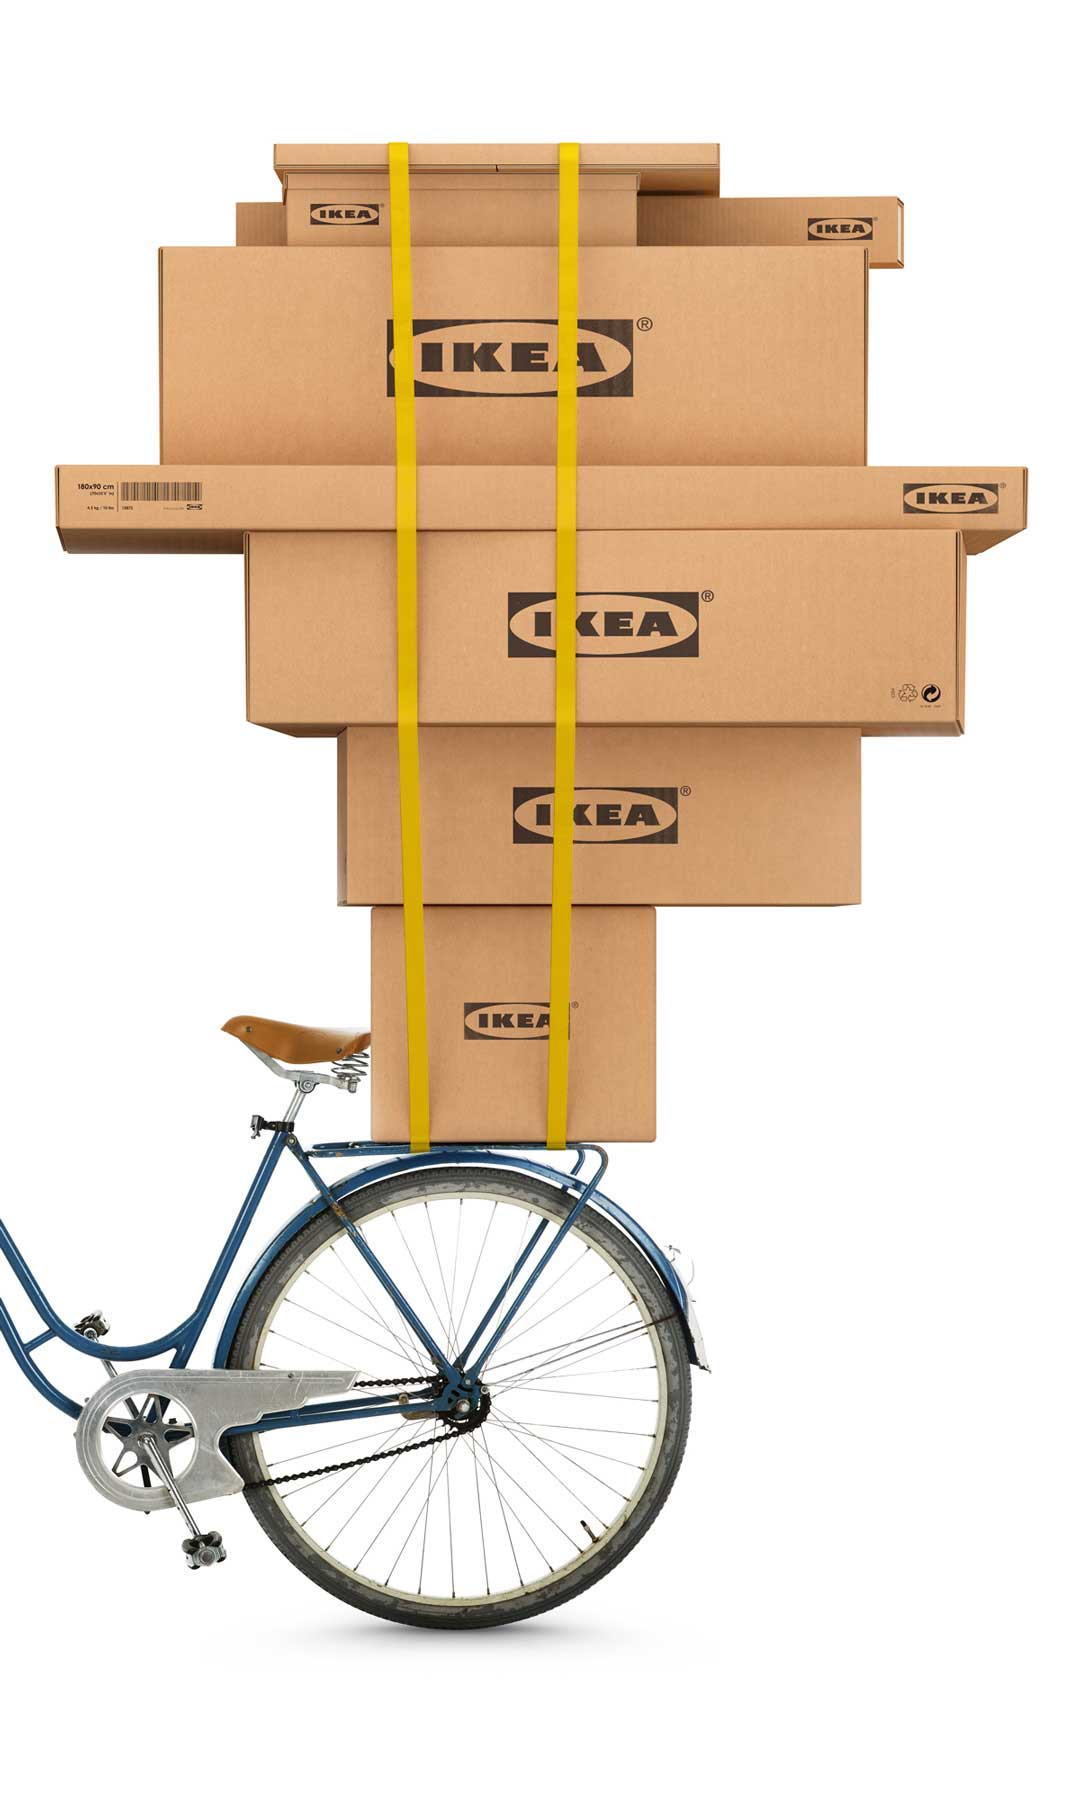 CGI-Boxes-packed-on-top-of-bike-Eastern Affair